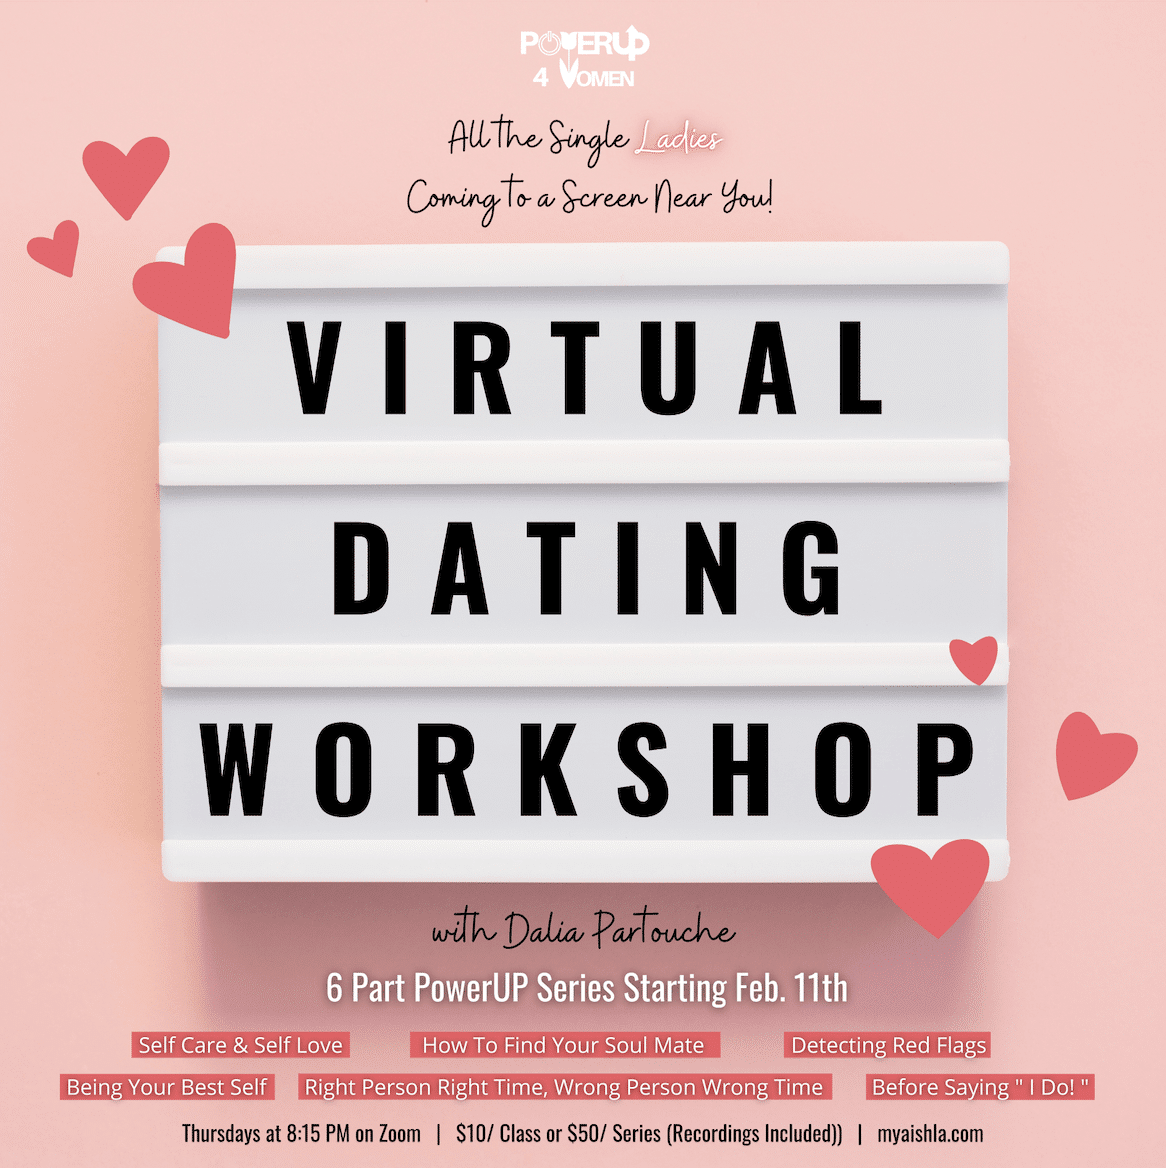 Virtual Dating Workshow with Dalia Partouche - MyAish Los Angeles